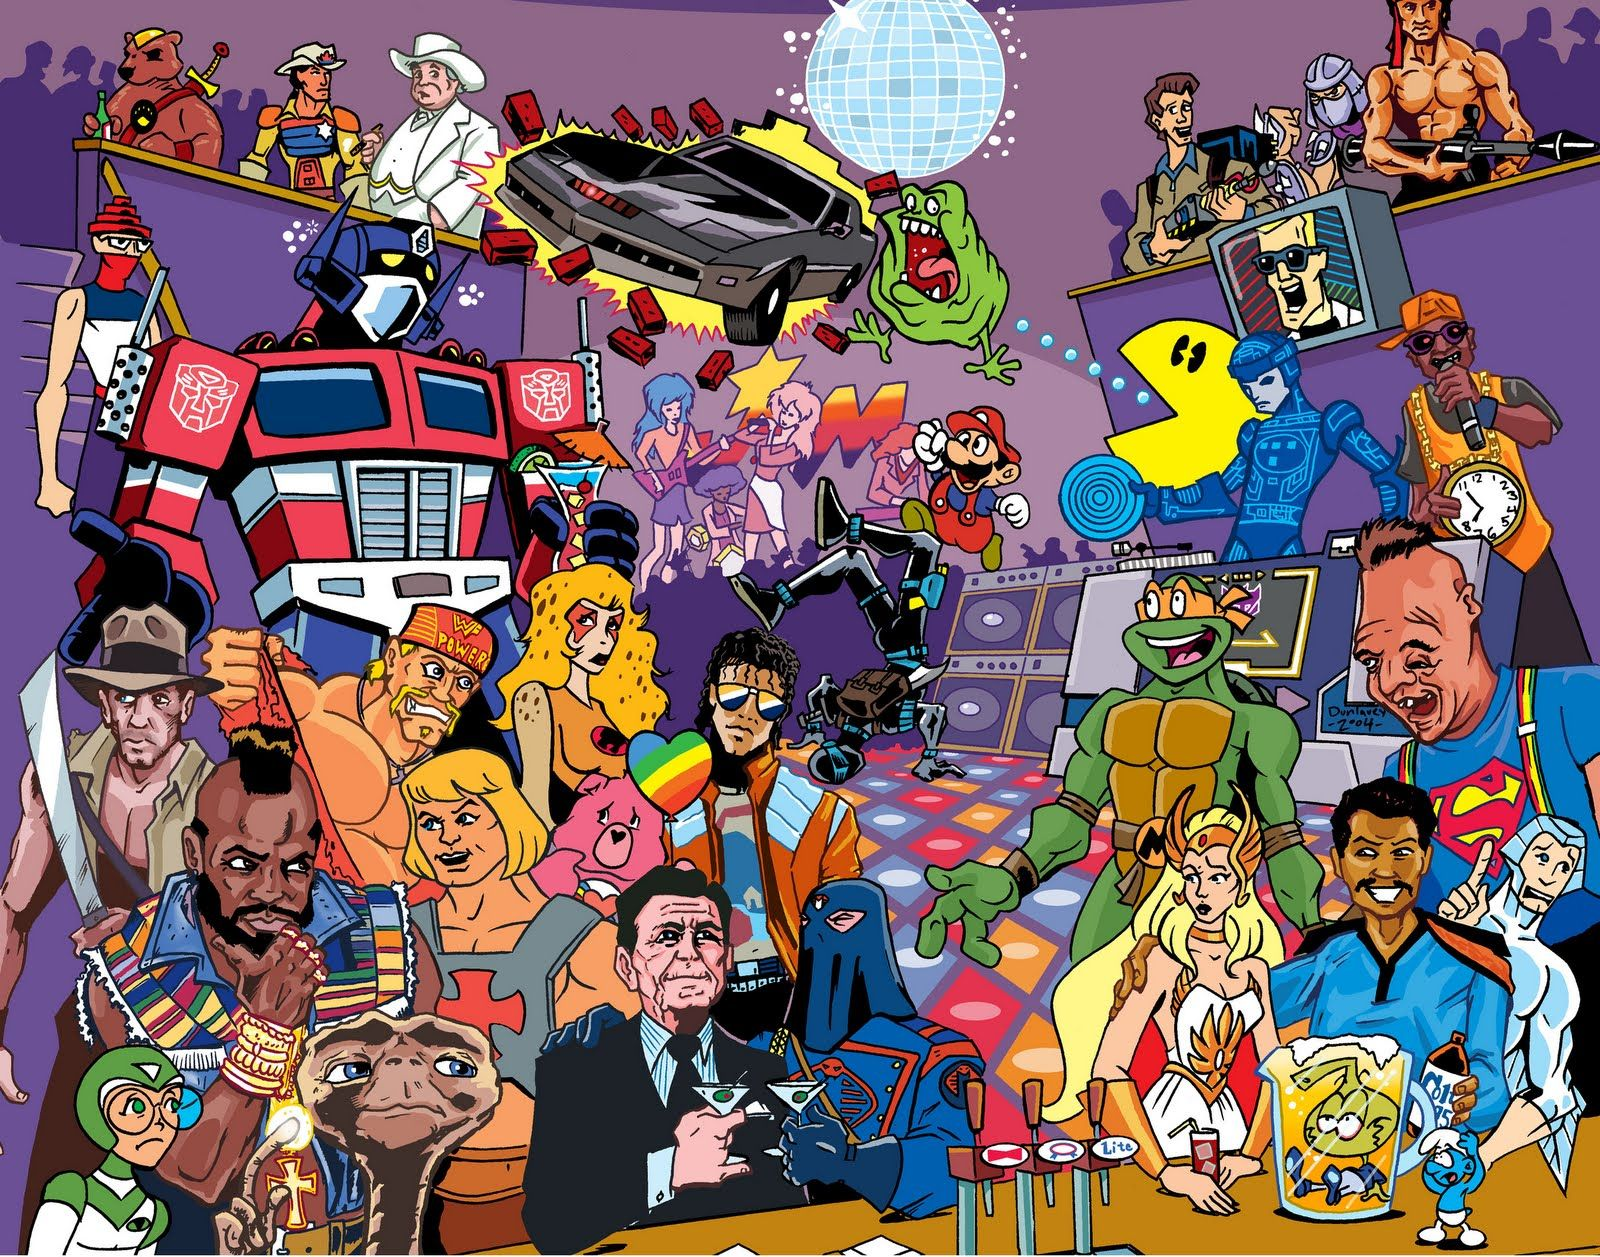 The Top 20 Pop Culture Icons of the '80s. Part 1 (110